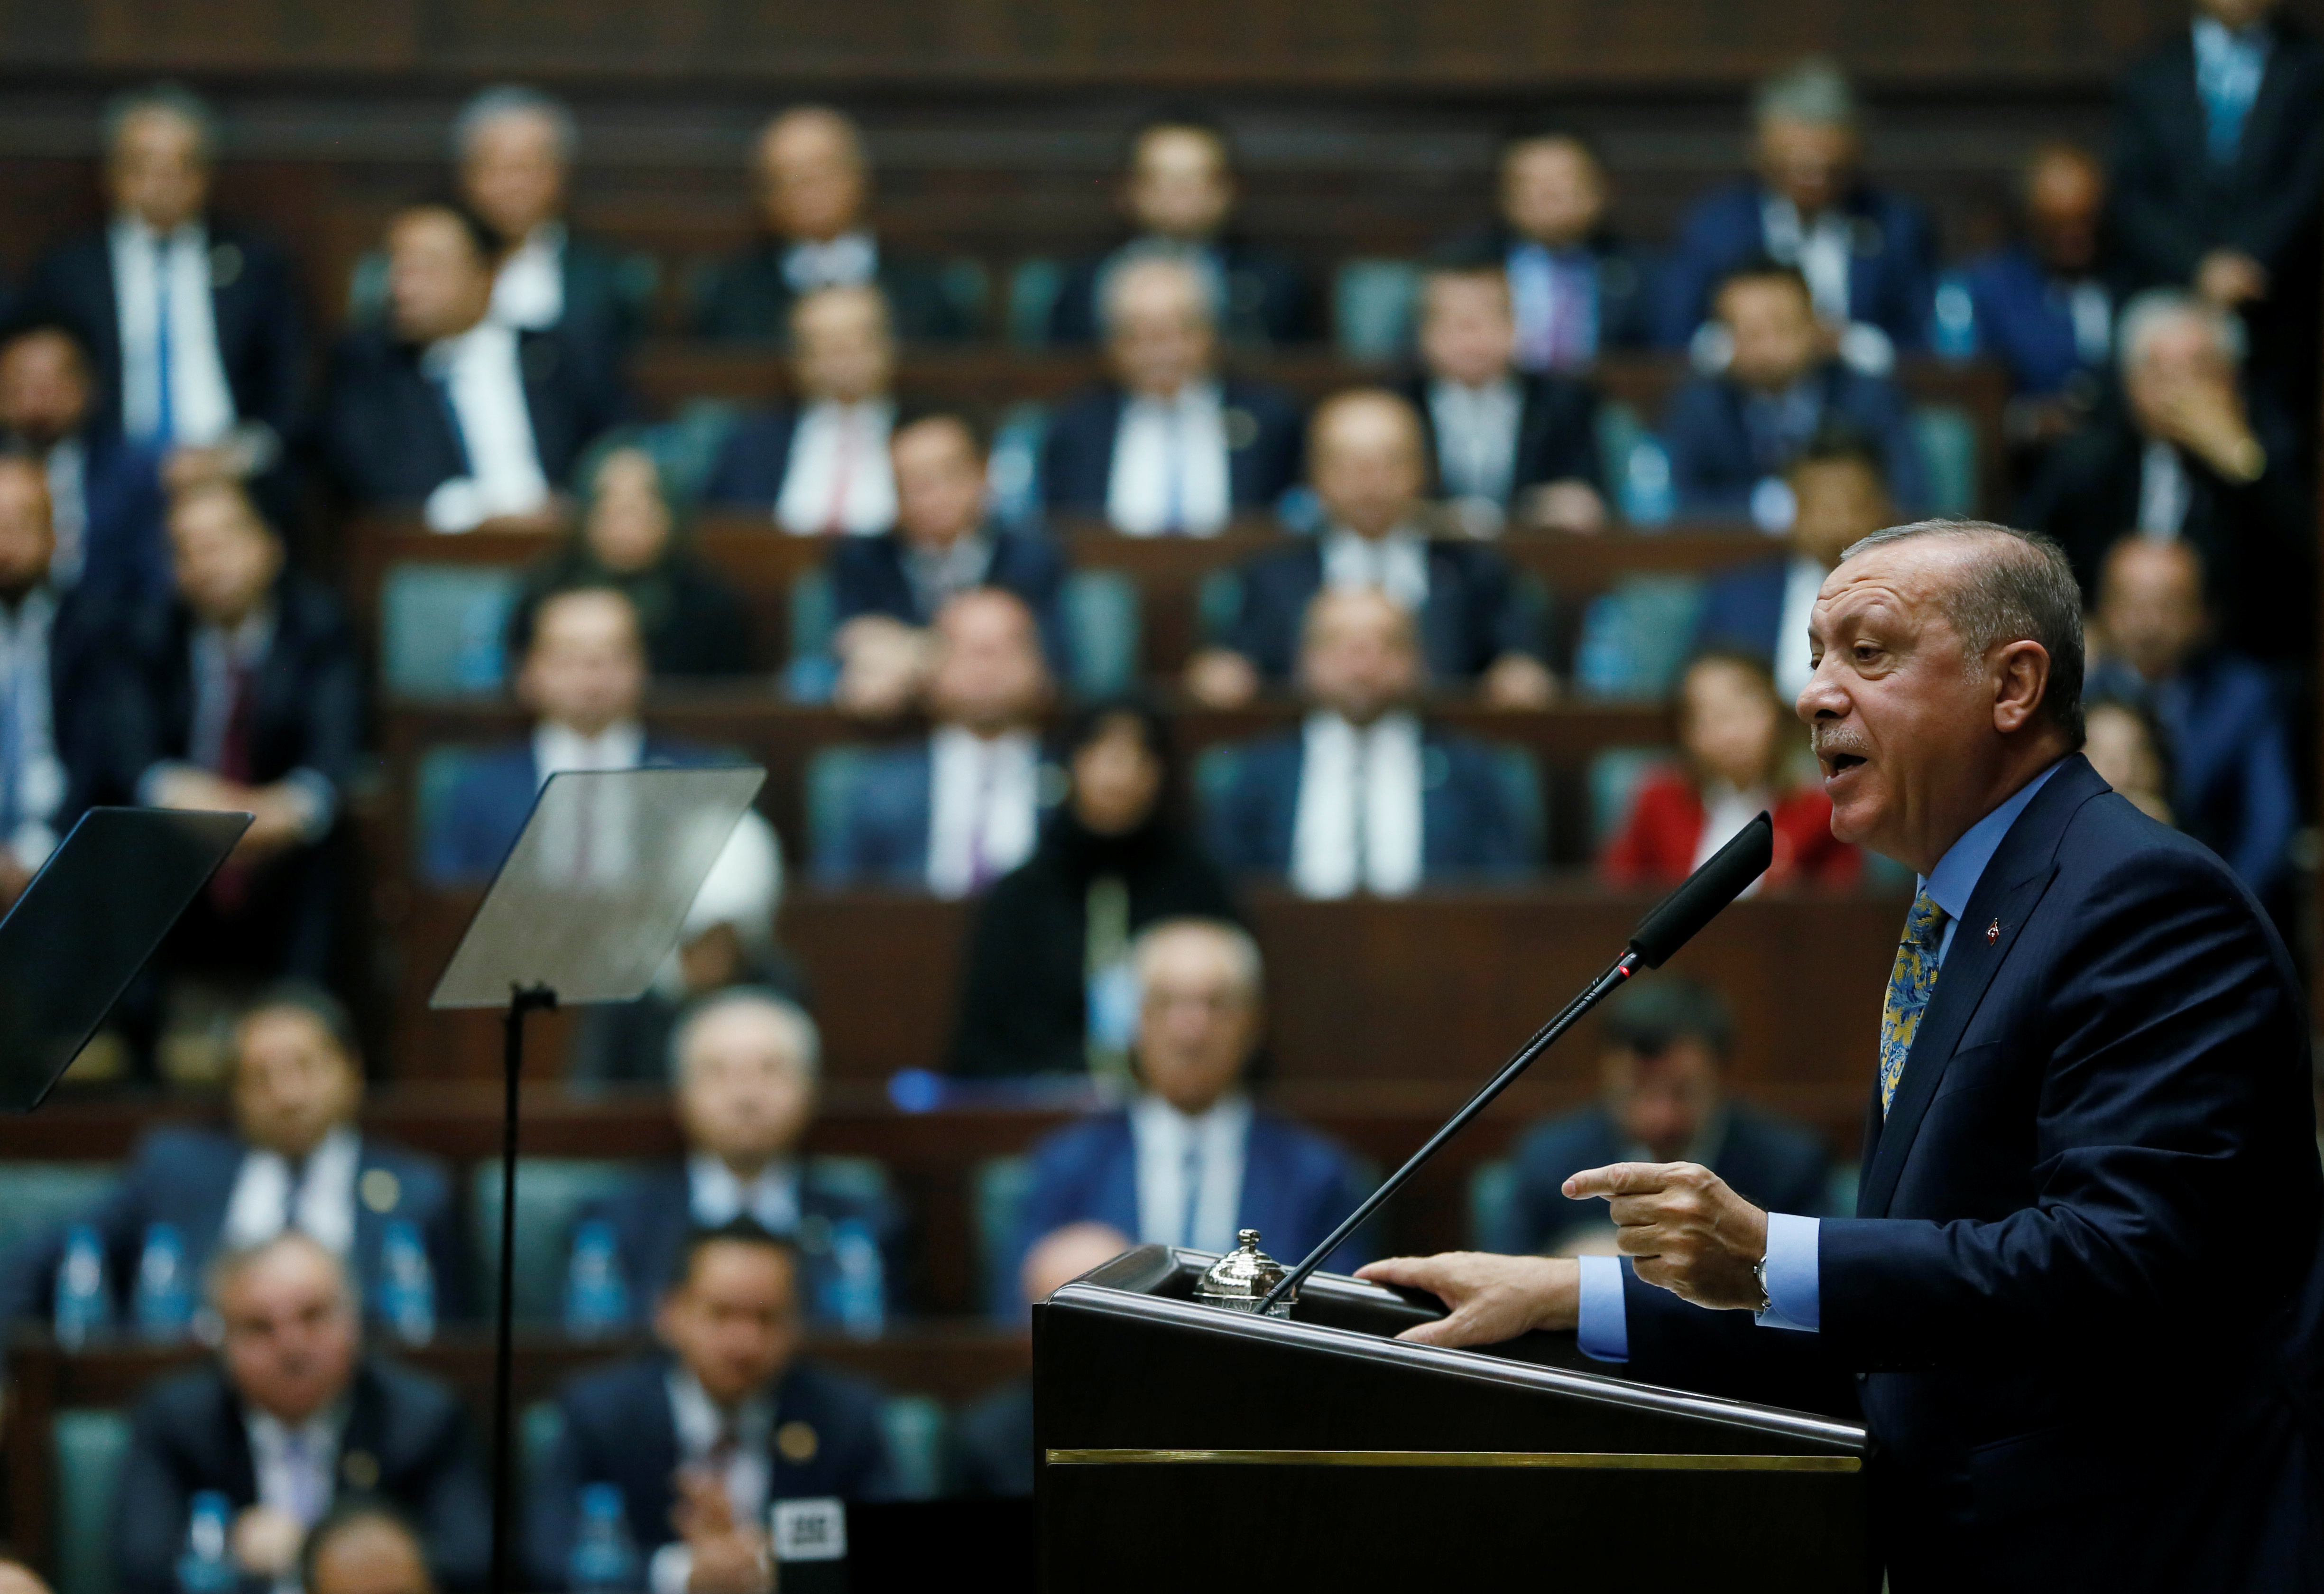 Turkish President Tayyip Erdogan addresses members of parliament from his ruling AK Party (AKP) during a meeting at the Turkish parliament in Ankara, Turkey October 23, 2018. Murat Cetinmuhurdar/Presidential Press Office/Handout via REUTERS